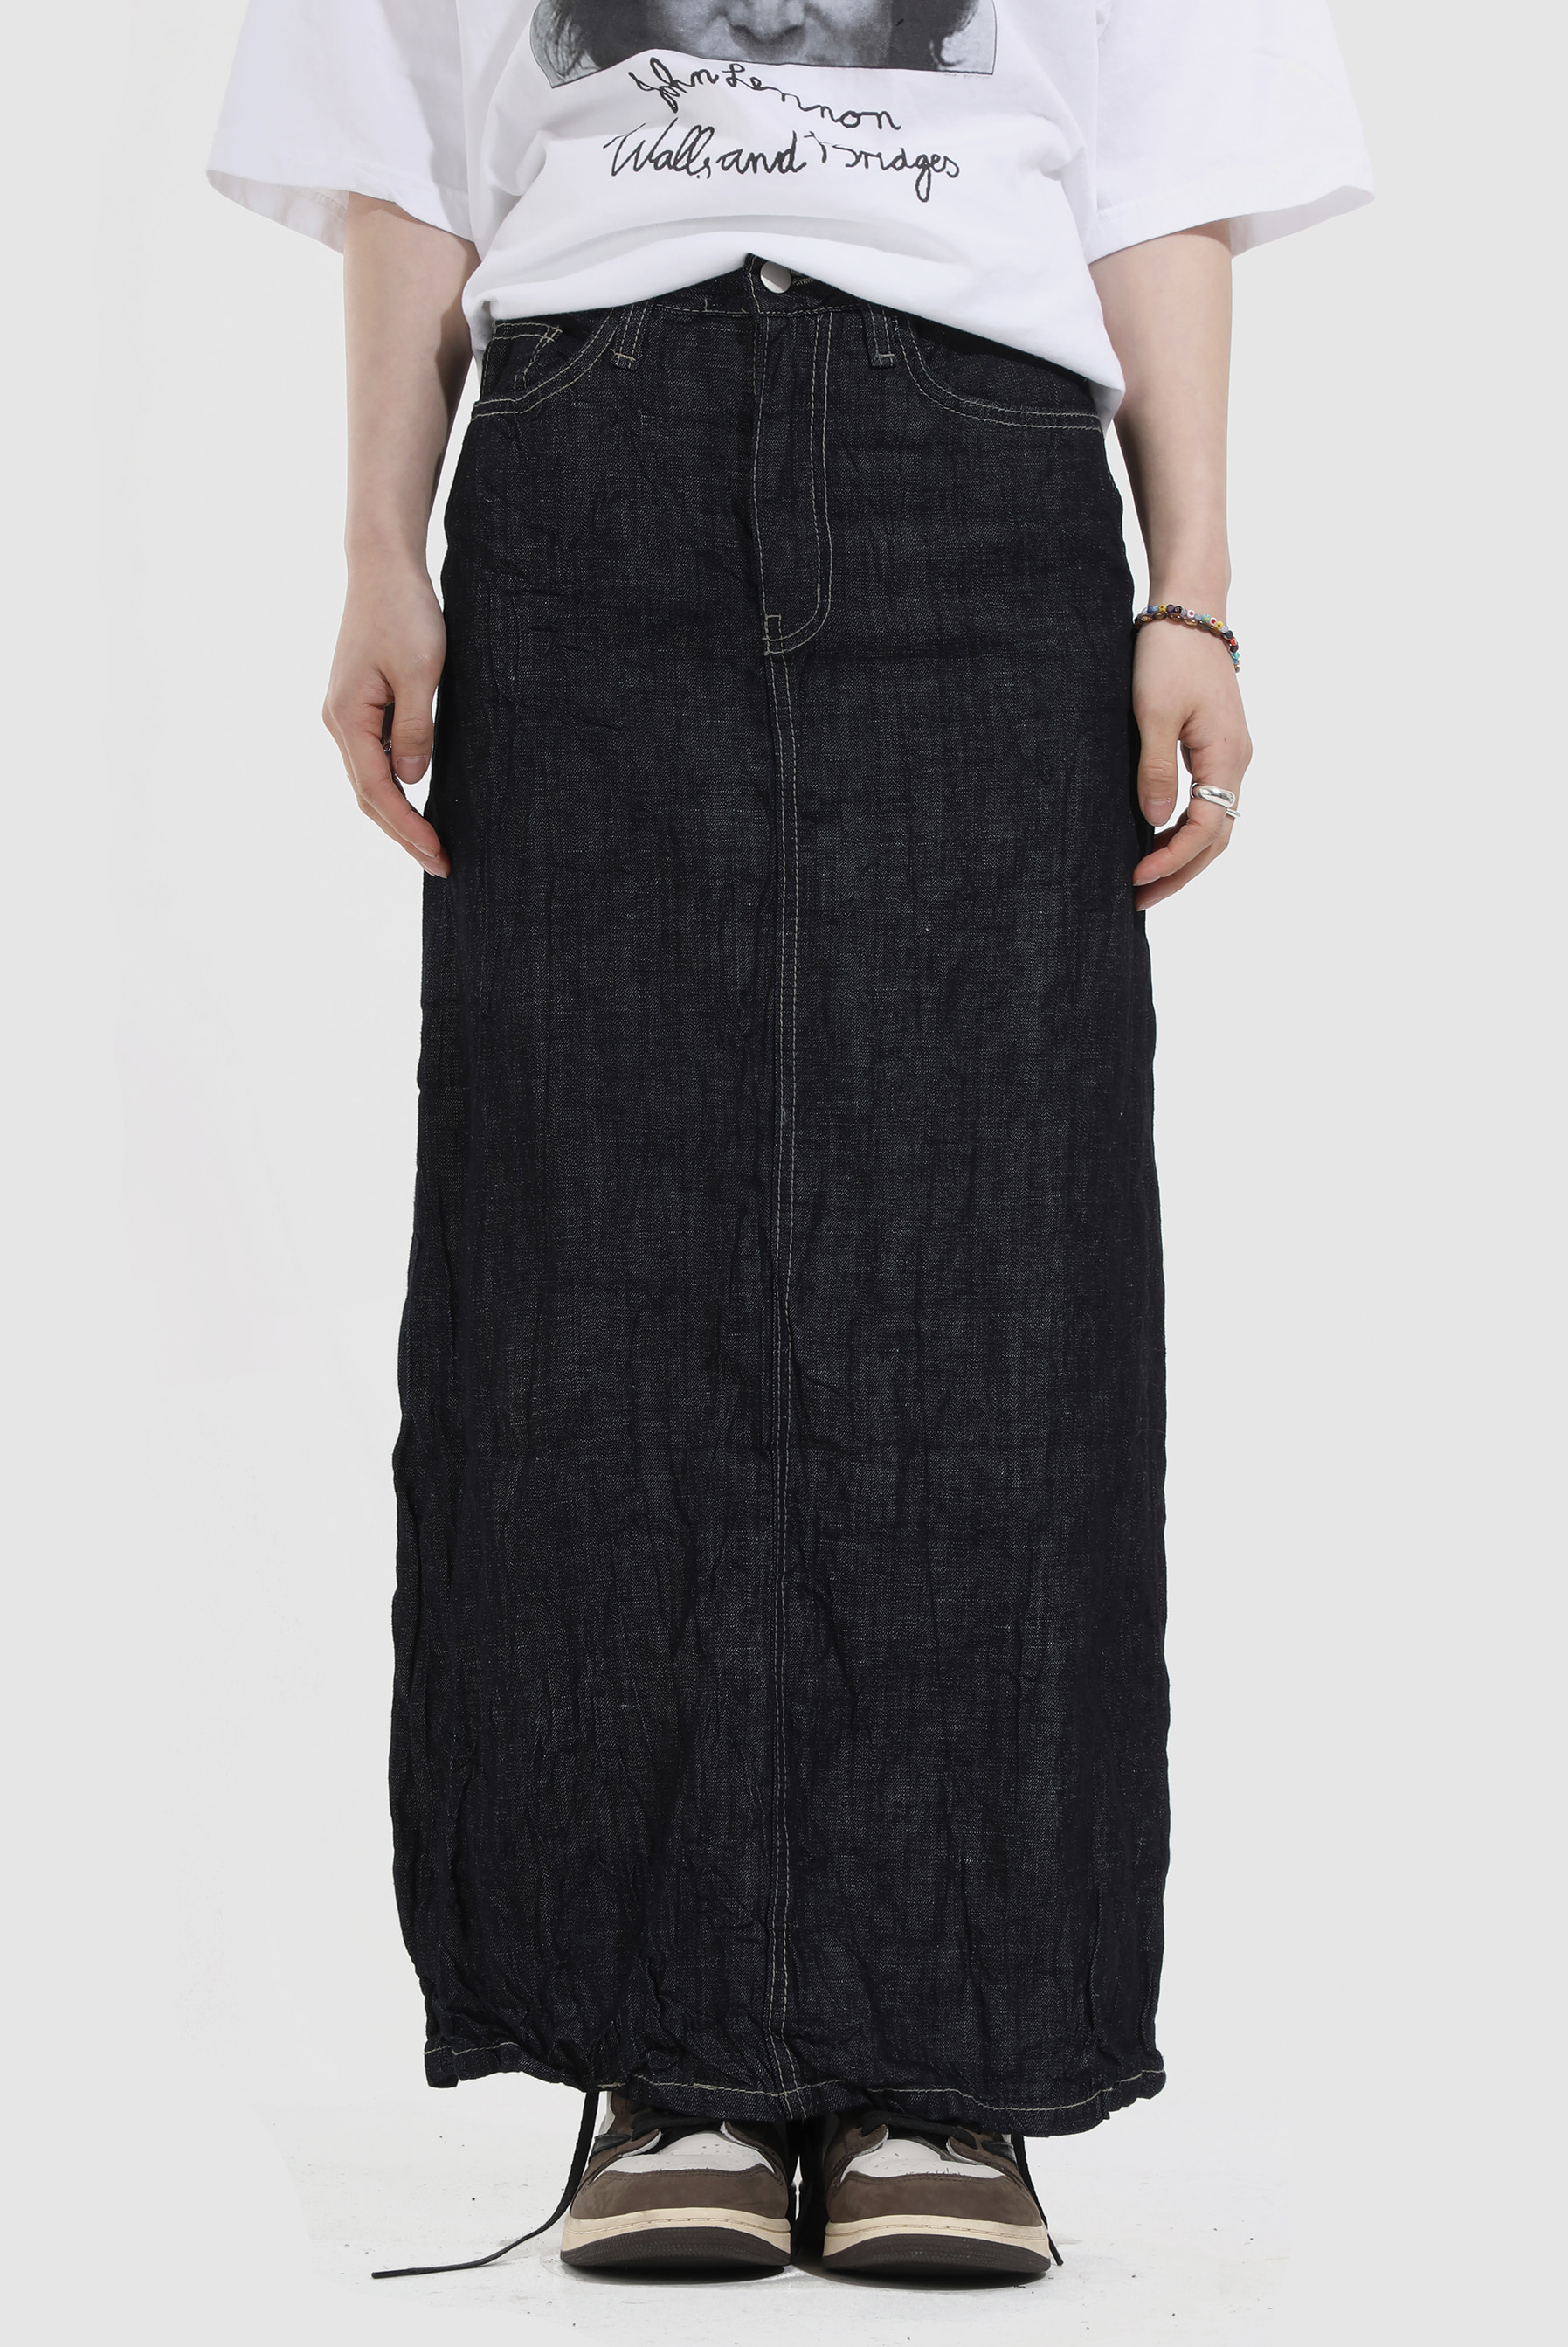 Wrinkle_Denim_Skirt